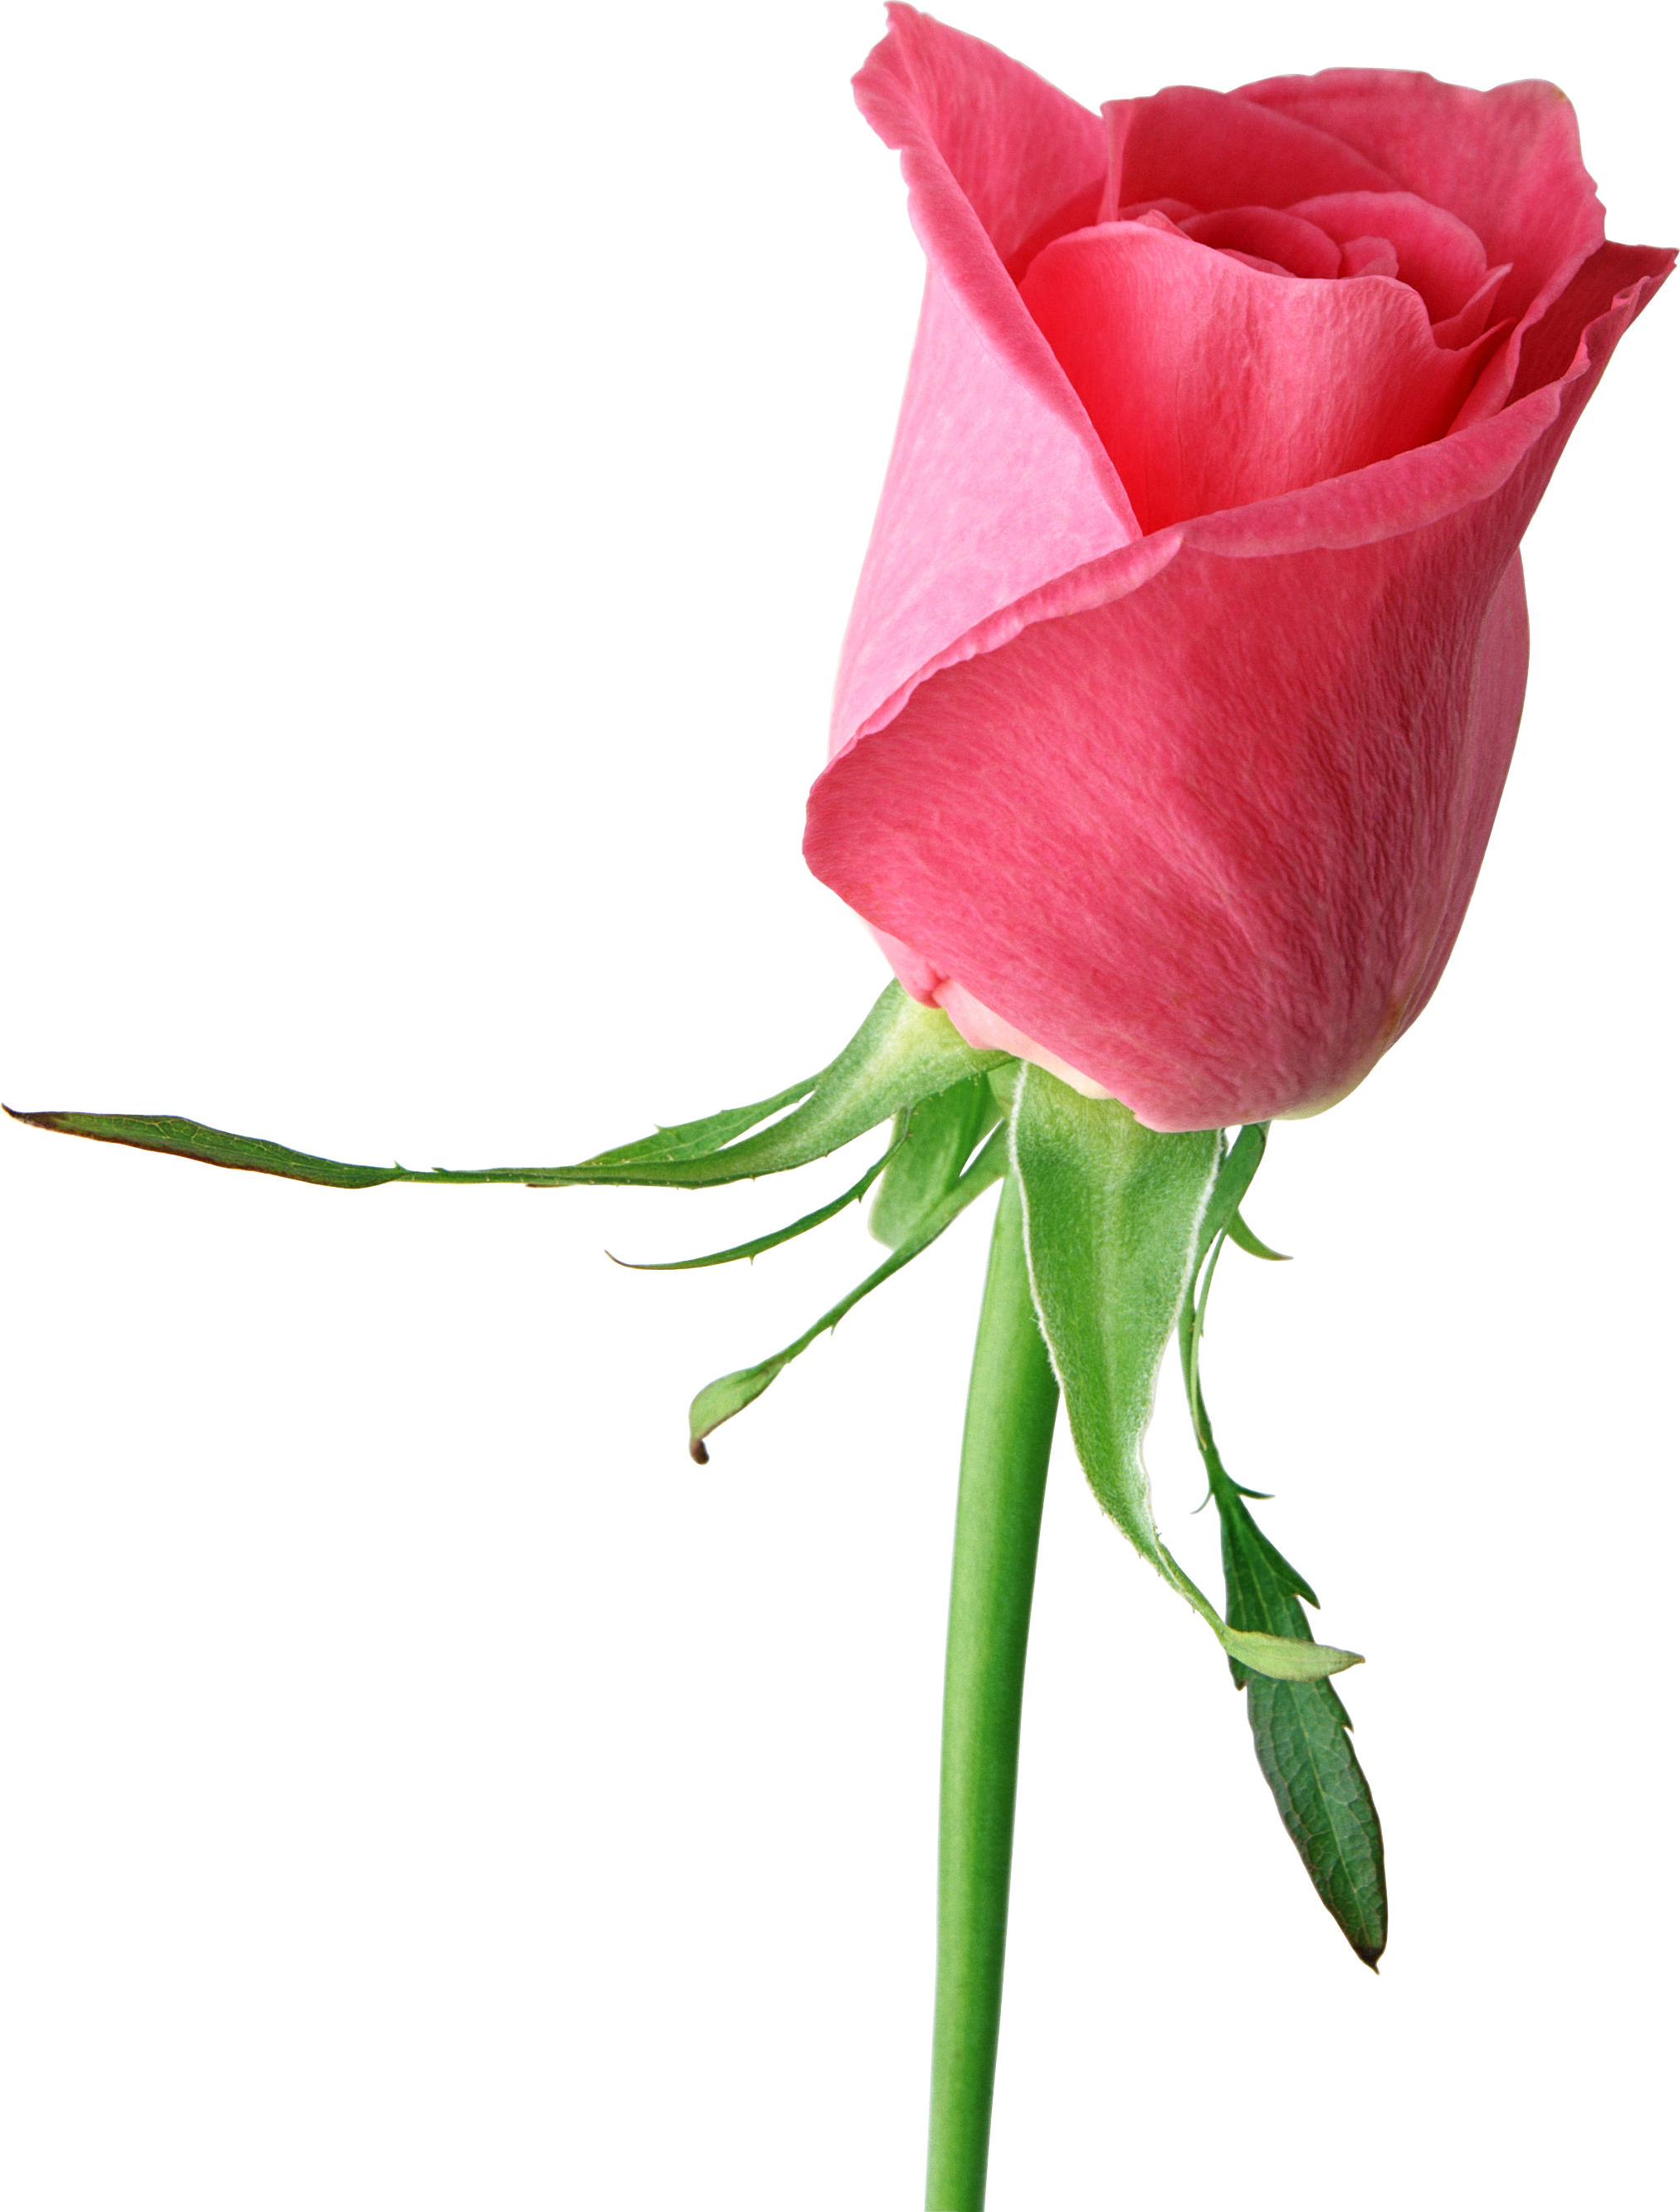 3 clipart rose. Free png download clip